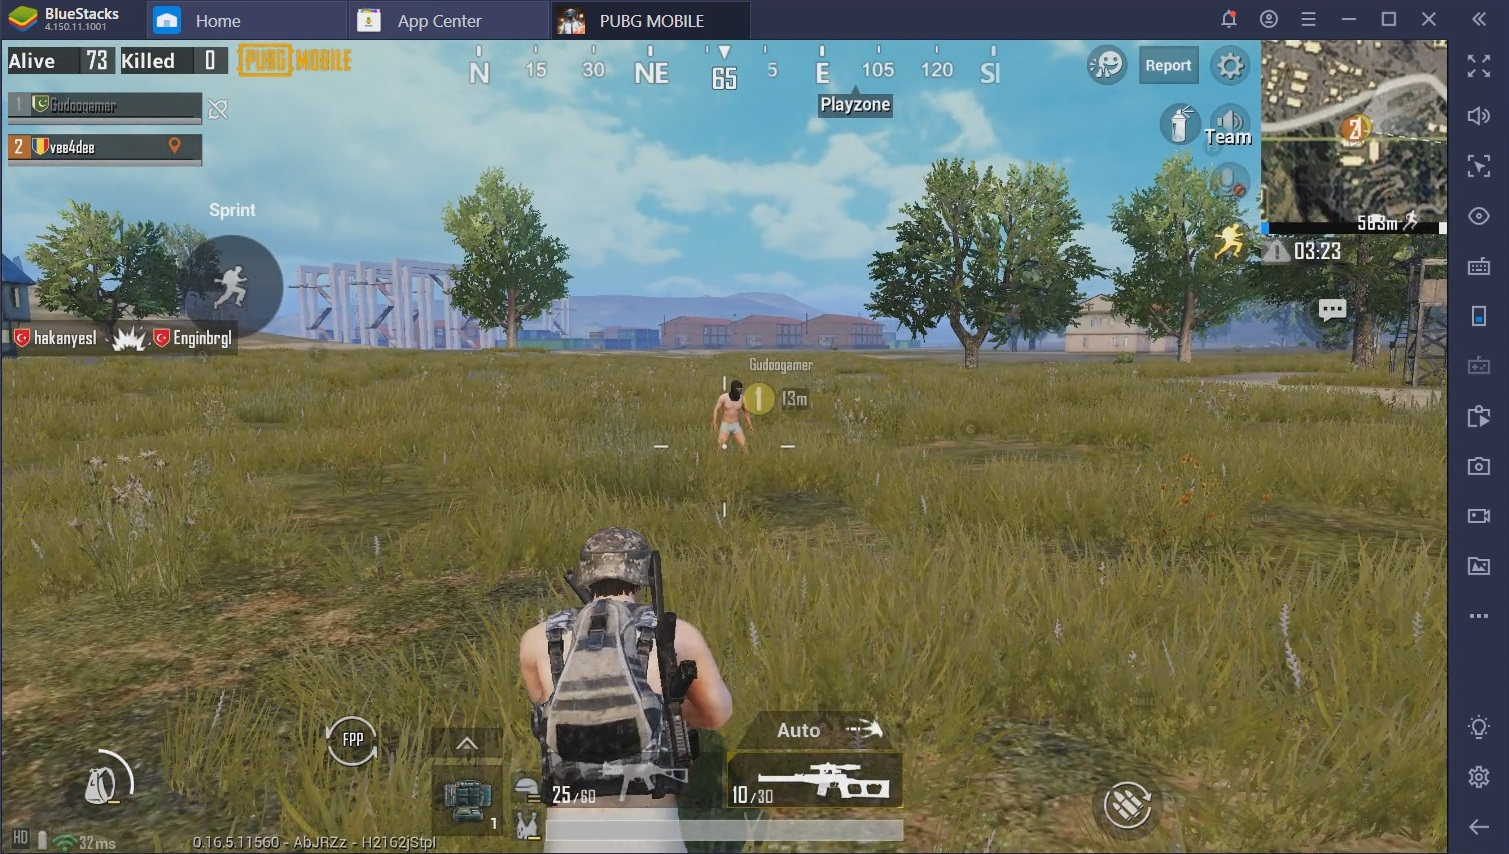 PUBG Mobile on PC: Duos and Squads Guide